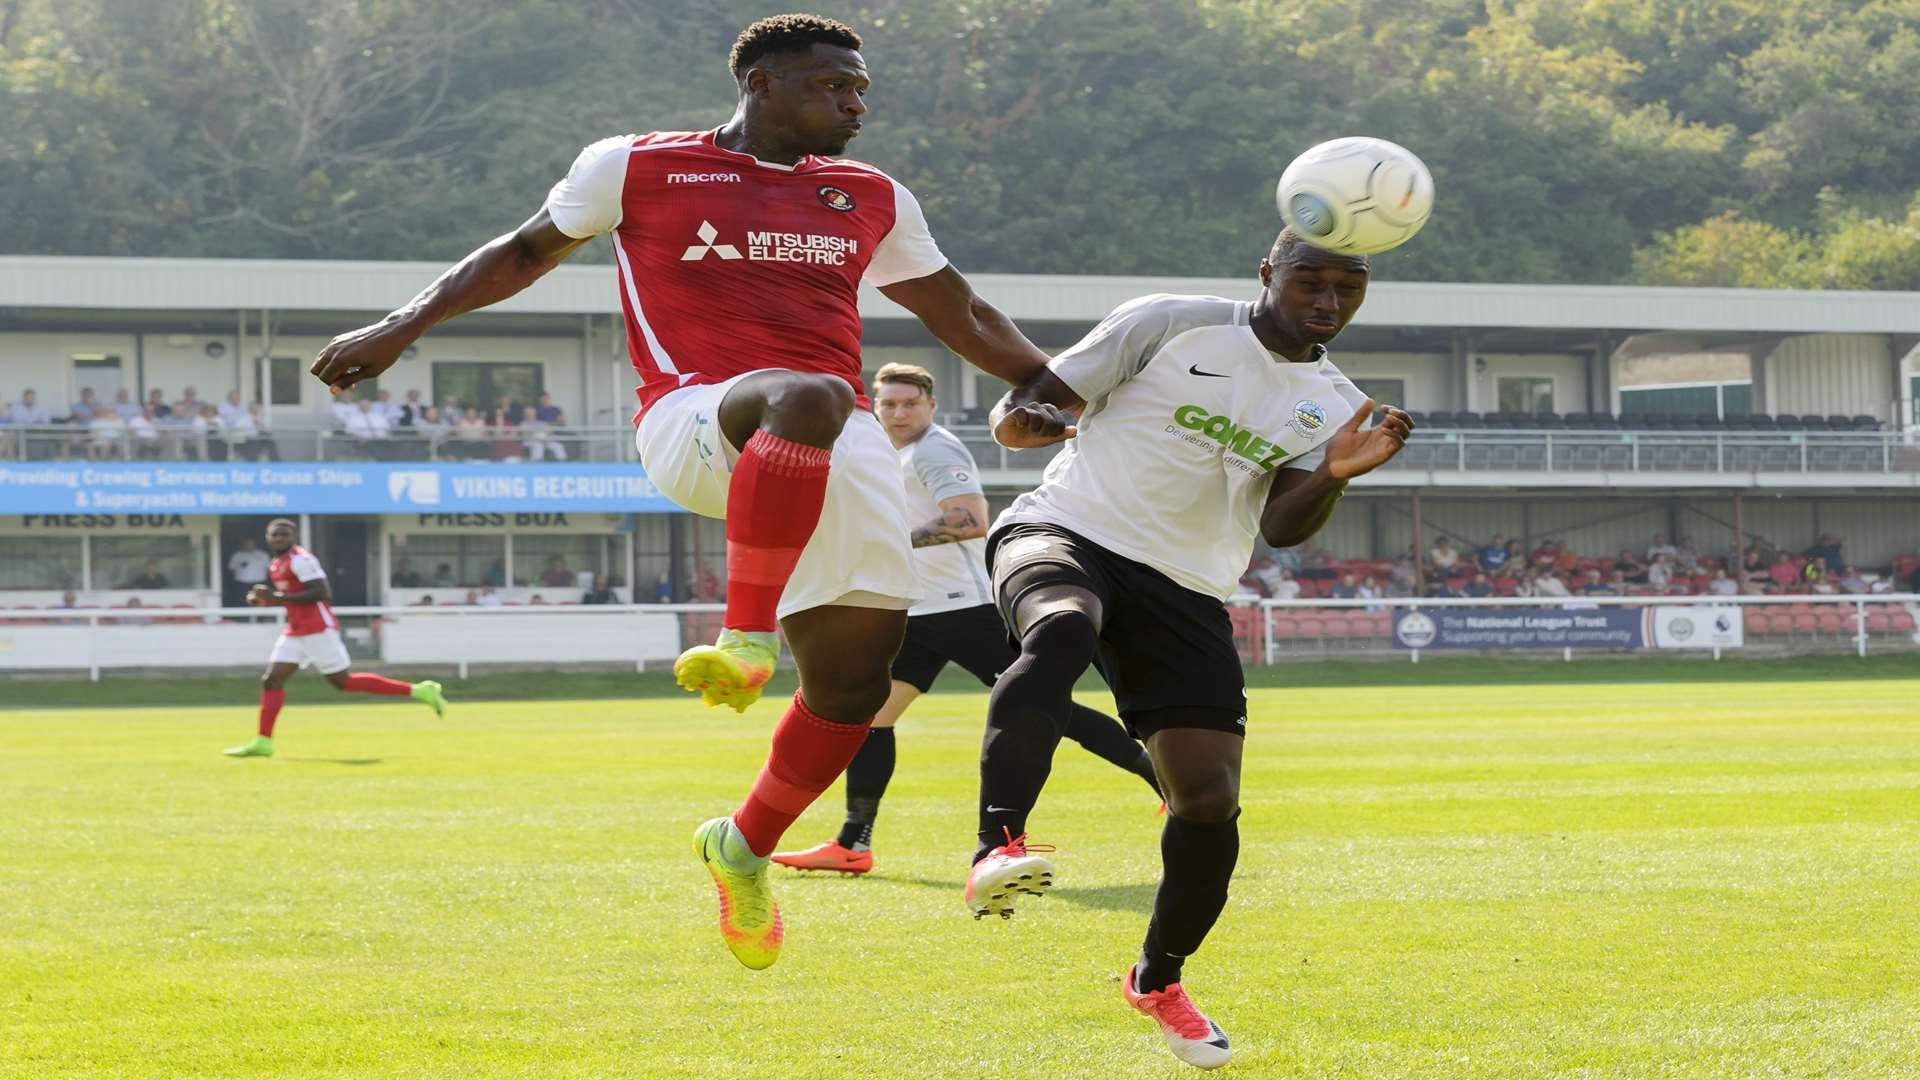 Yado Mambo in action for Ebbsfleet Picture: Andy Payton